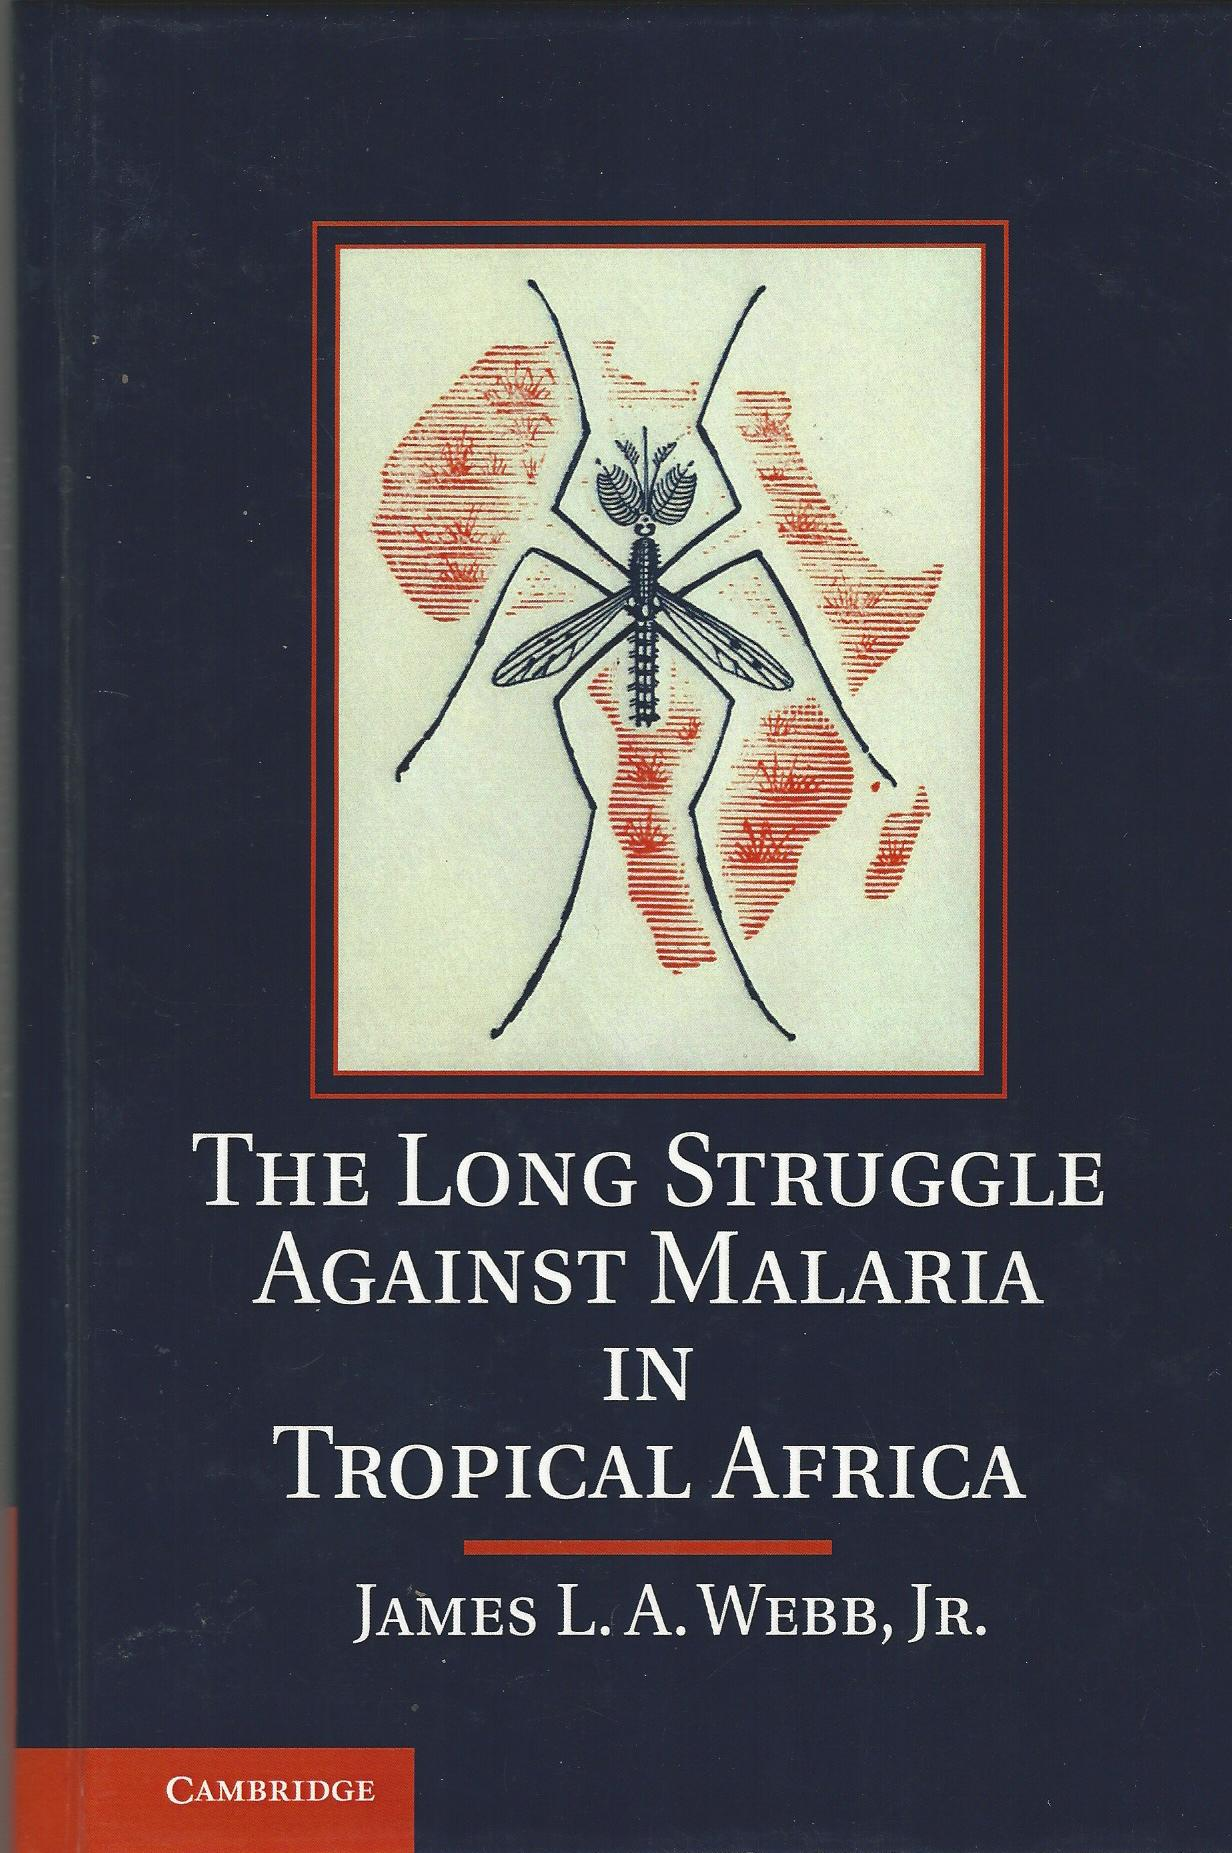 Image for The Long Struggle against Malaria in Tropical Africa